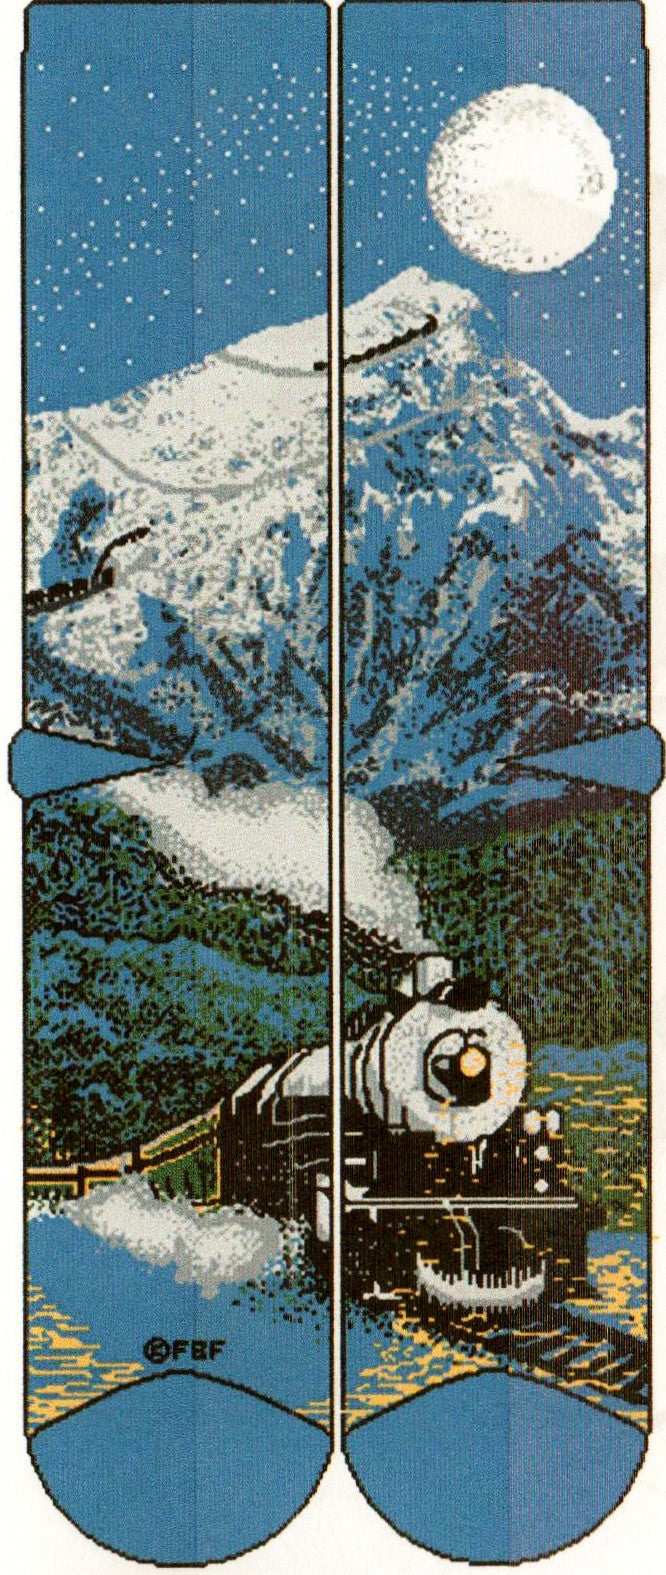 FBF Mountain Train at Night is a train that has found the passage through the mountains in the evening Moon light.